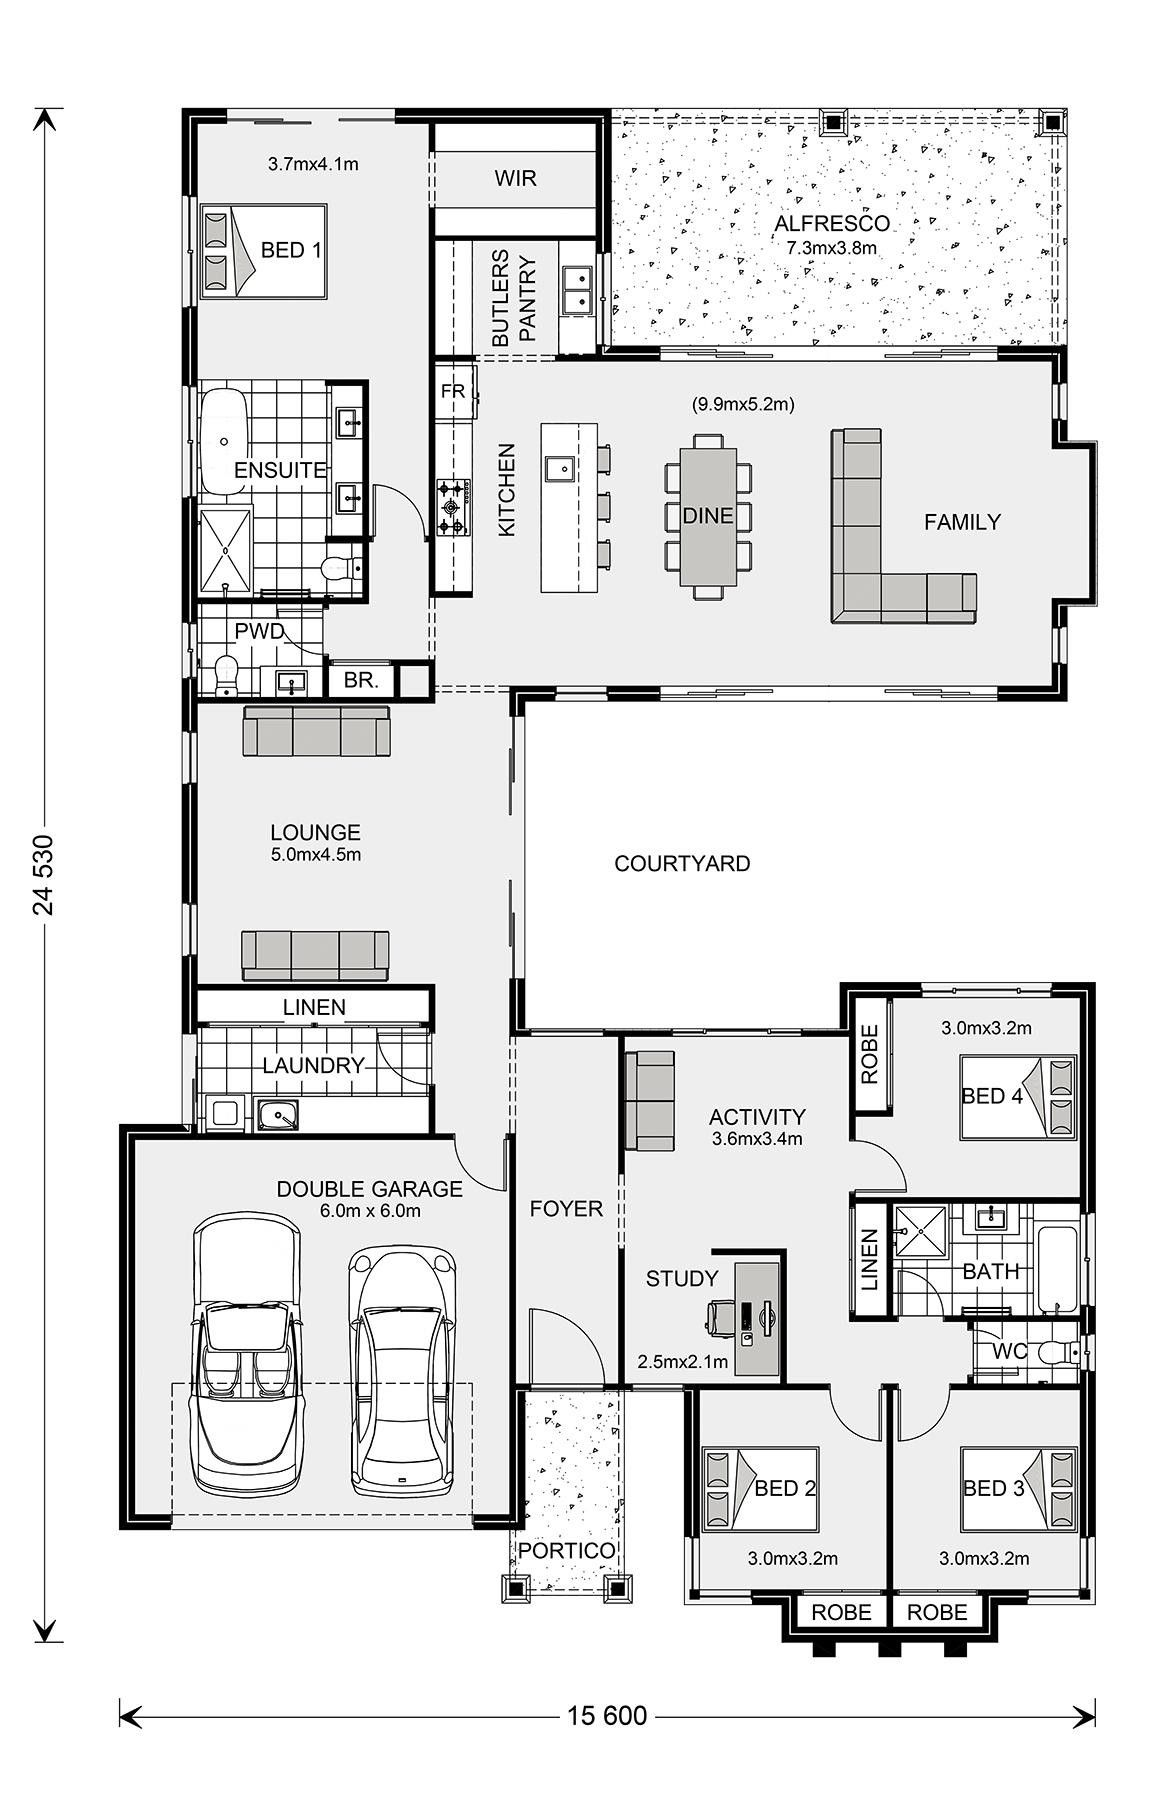 Pin By Gavin Flett On House Plans With Images Home Design Floor Plans Courtyard House Plans